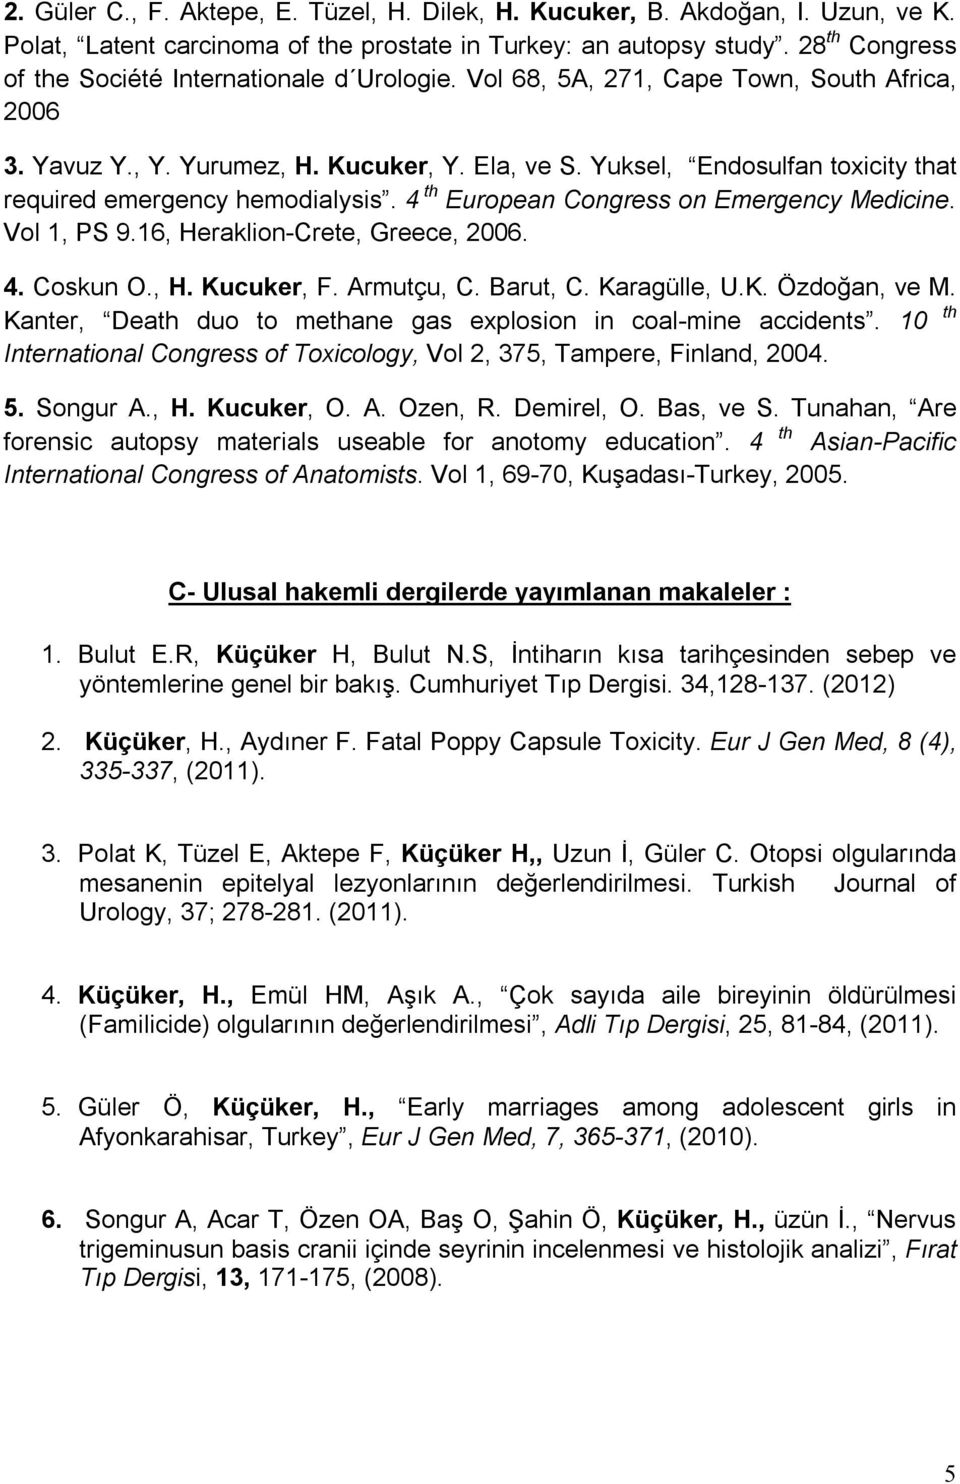 Yuksel, Endosulfan toxicity that required emergency hemodialysis. 4 th European Congress on Emergency Medicine. Vol 1, PS 9.16, Heraklion-Crete, Greece, 2006. 4. Coskun O., H. Kucuker, F. Armutçu, C.